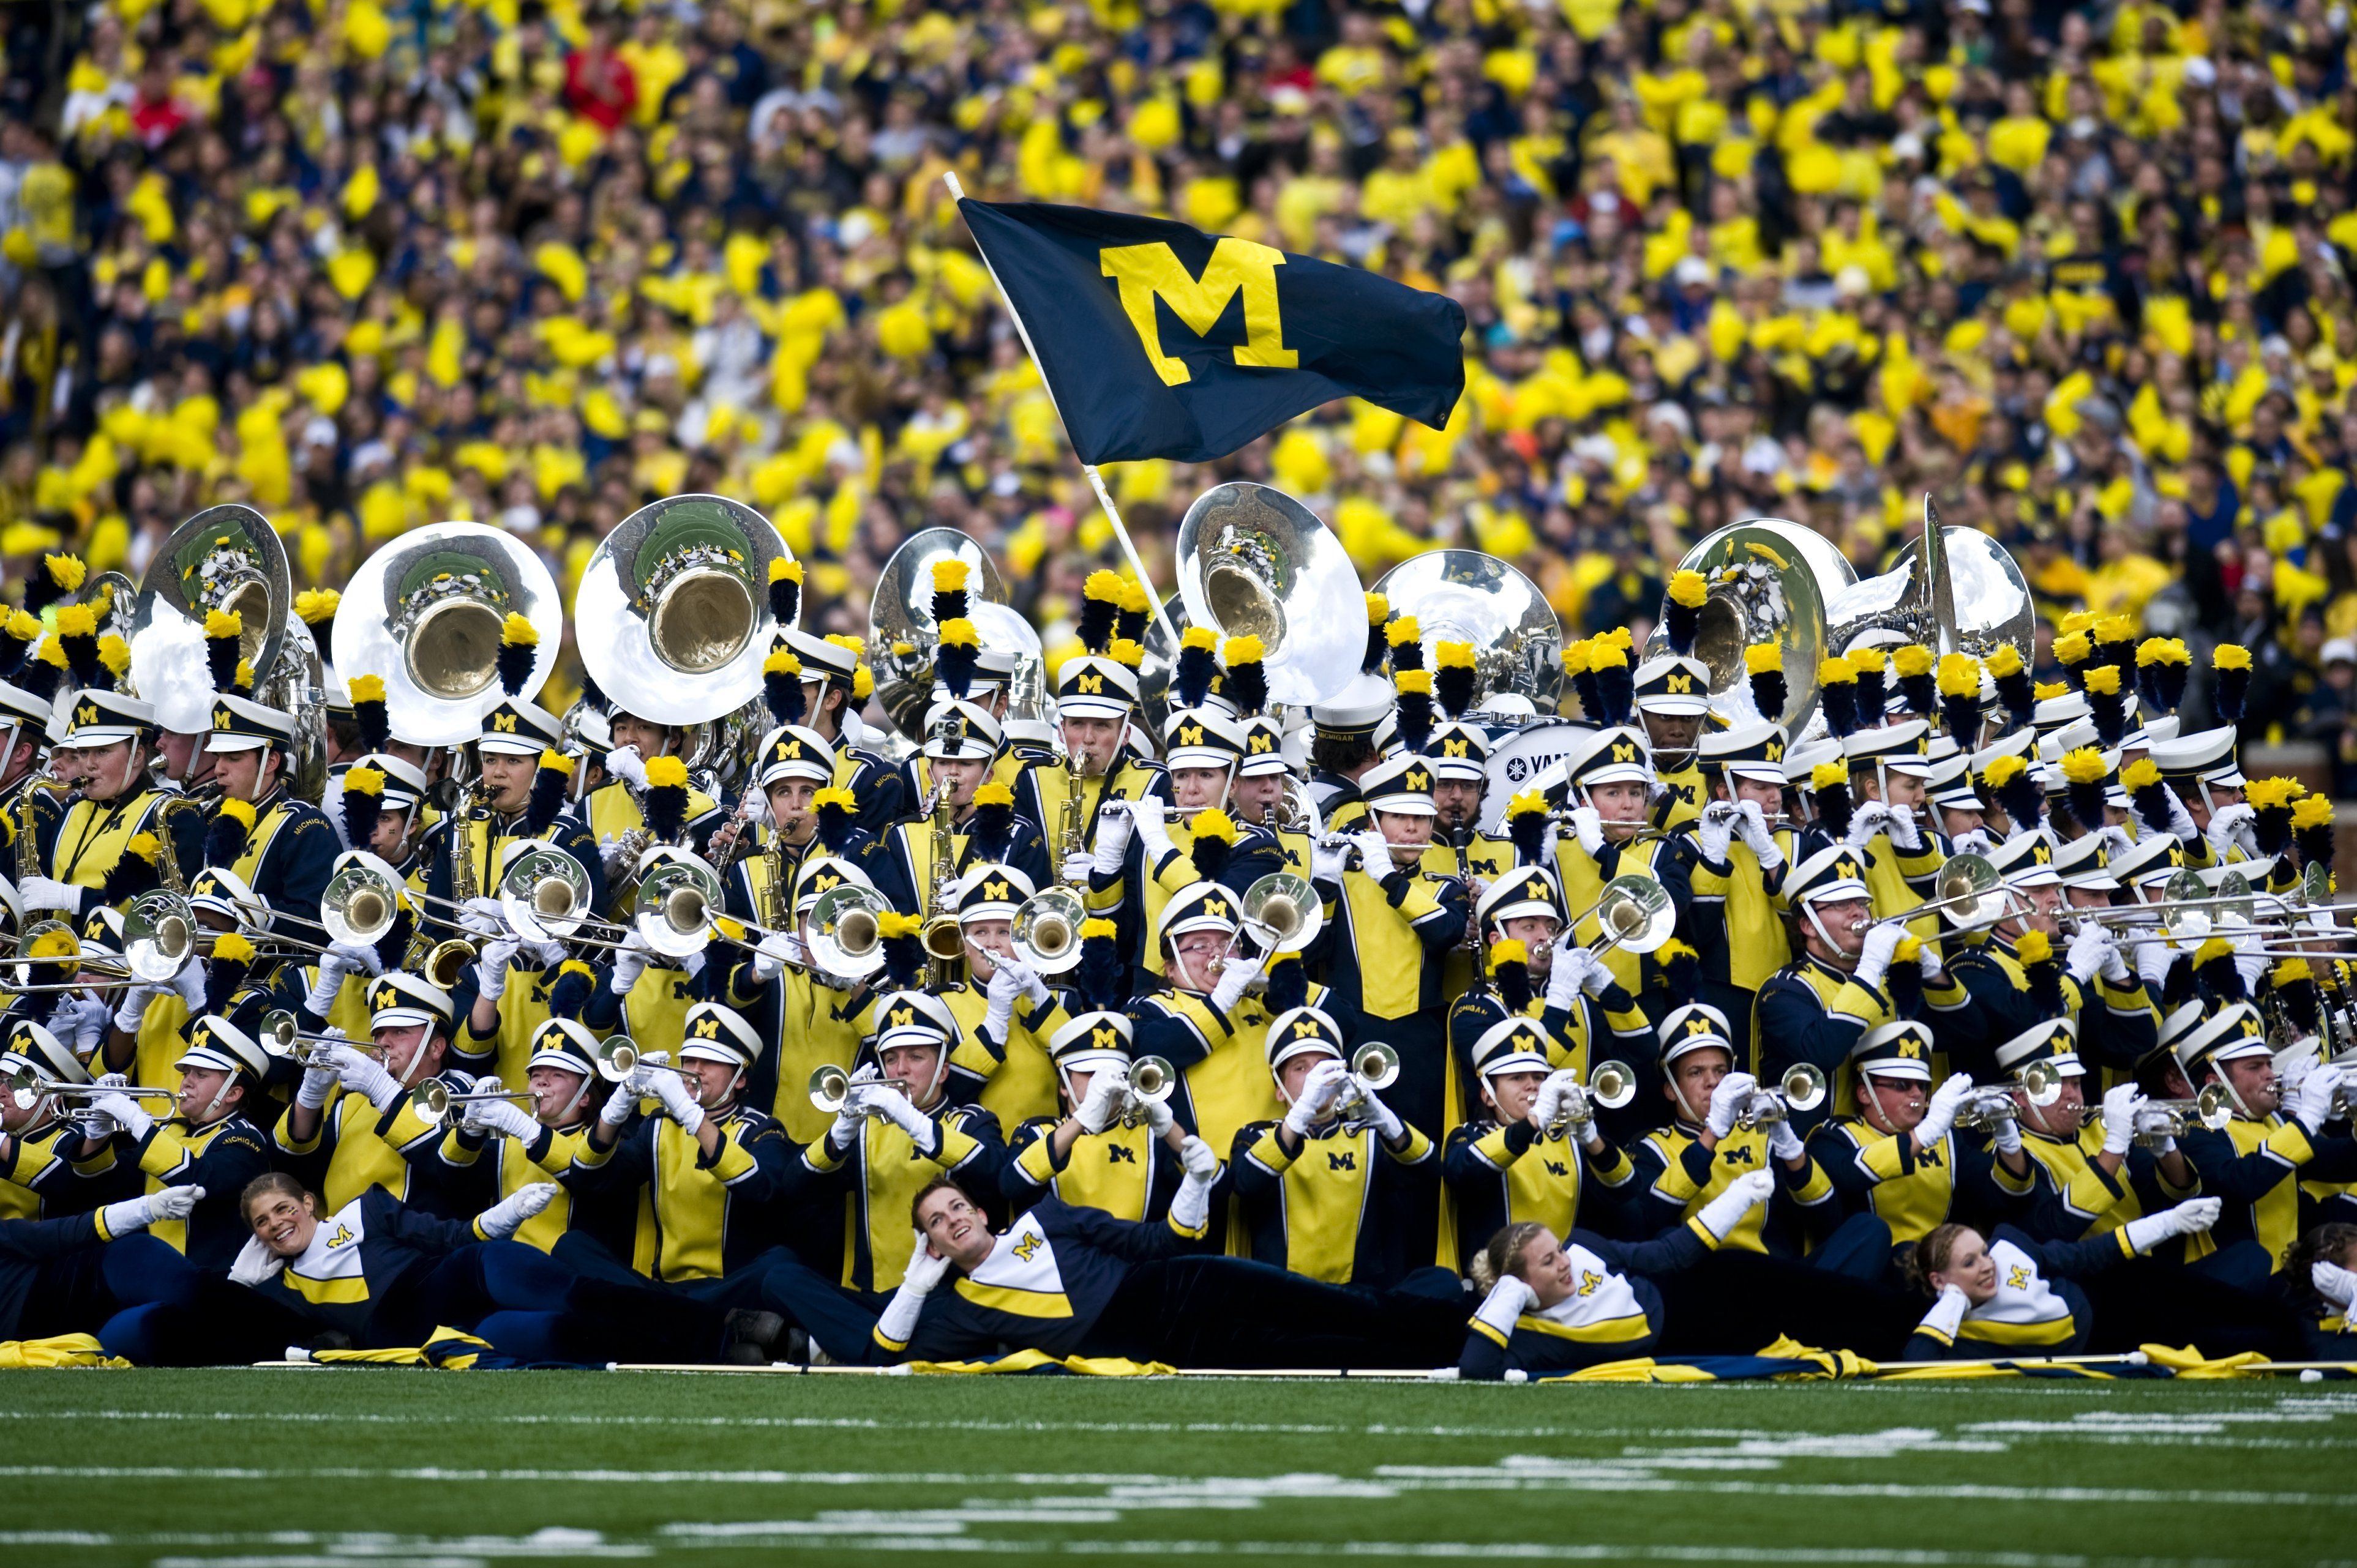 Michigan Marching Band I Spy Myself And A Few Of My Very Close Images, Photos, Reviews